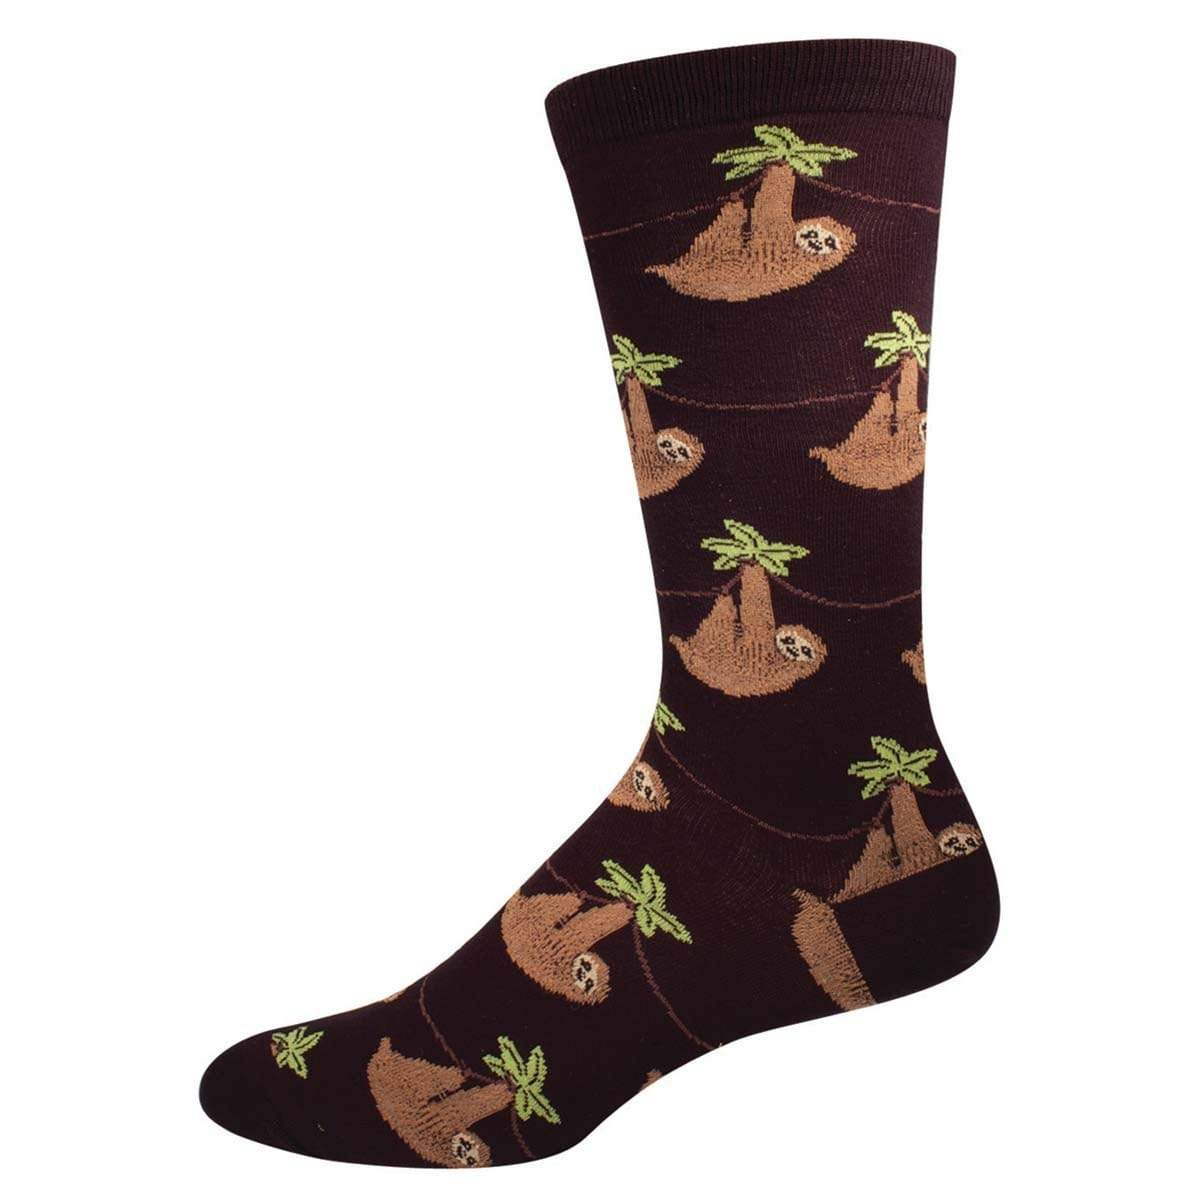 Sloth Men's Crew Sock Black